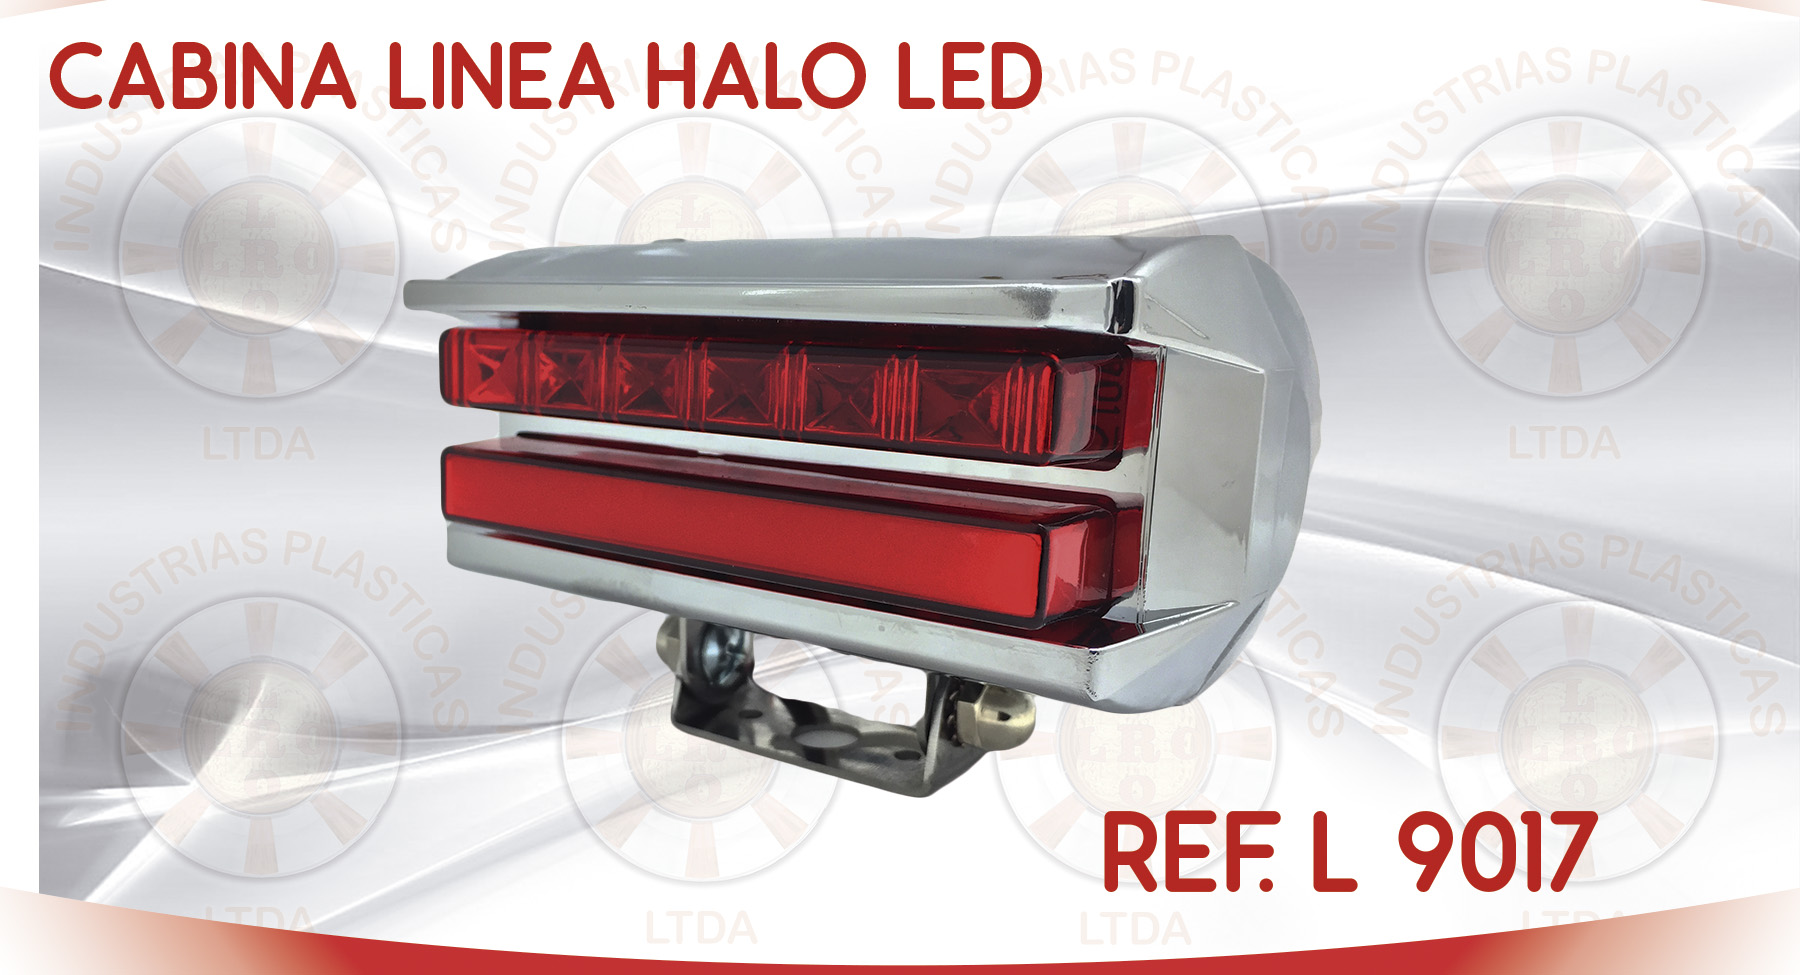 L 9017 CABINA LINEA HALO LED